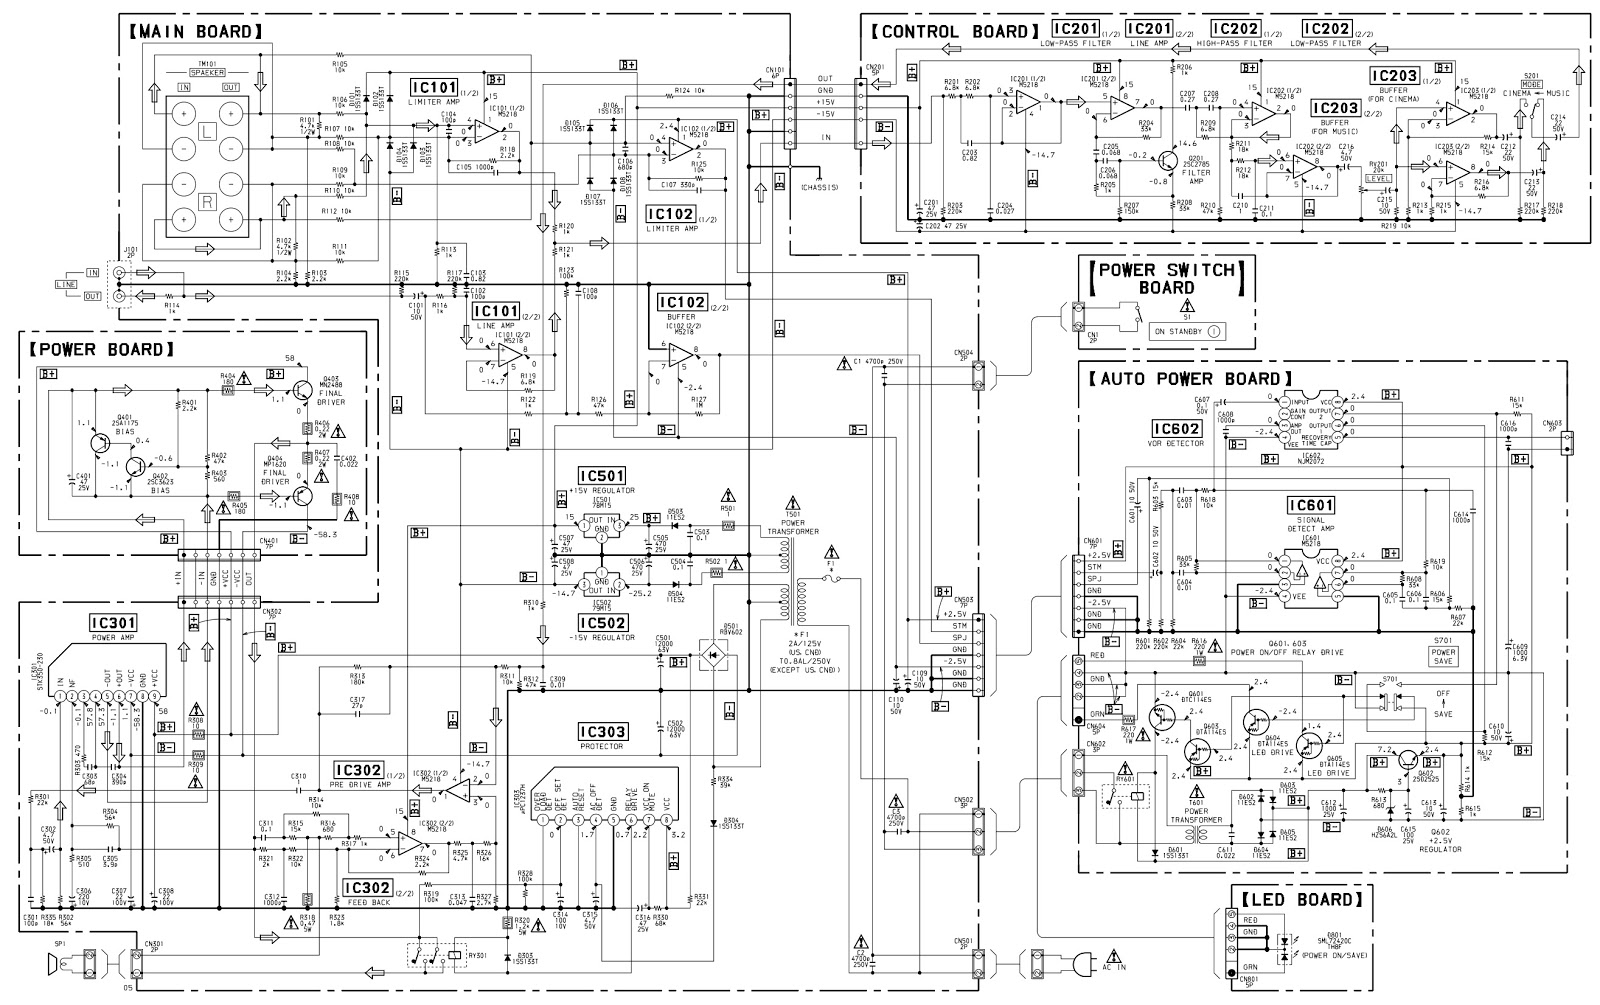 sony sa-ve502 - ve505 micro satellite system circuit diagram